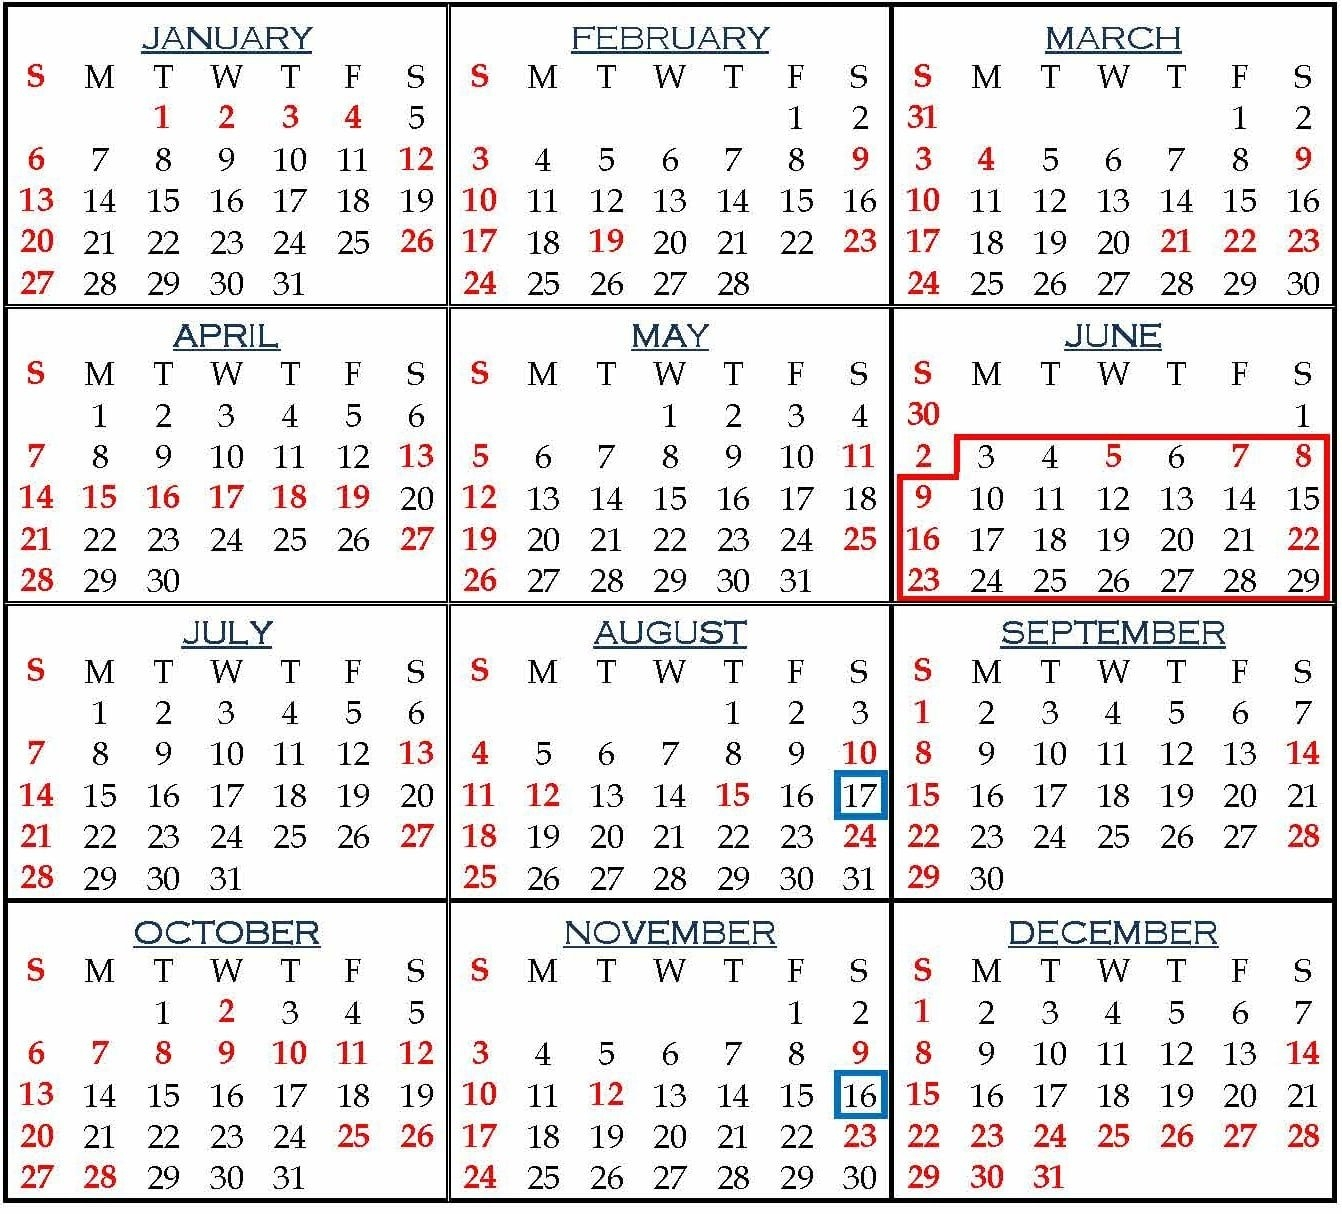 Holiday List For Employees Of Punjab And Haryana High Court, 2019 Calendar 2019 Holidays List